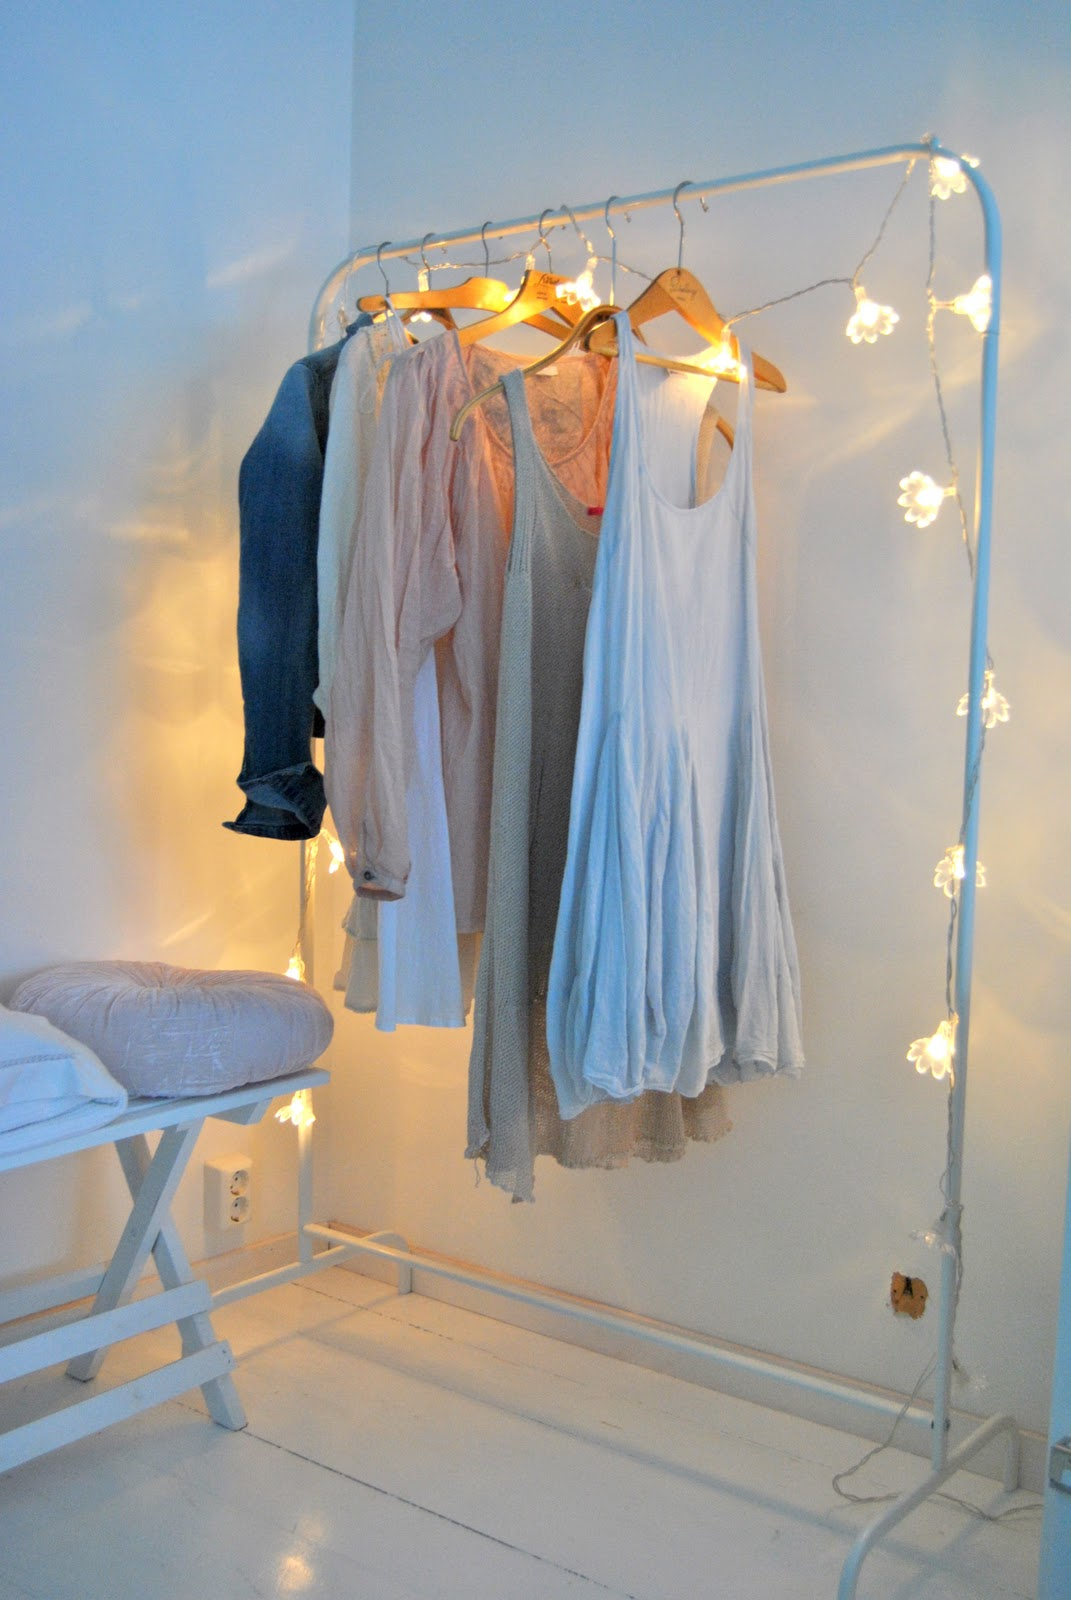 1000 images about bedroom fairy lights on pinterest - Bedroom furniture for hanging clothes ...